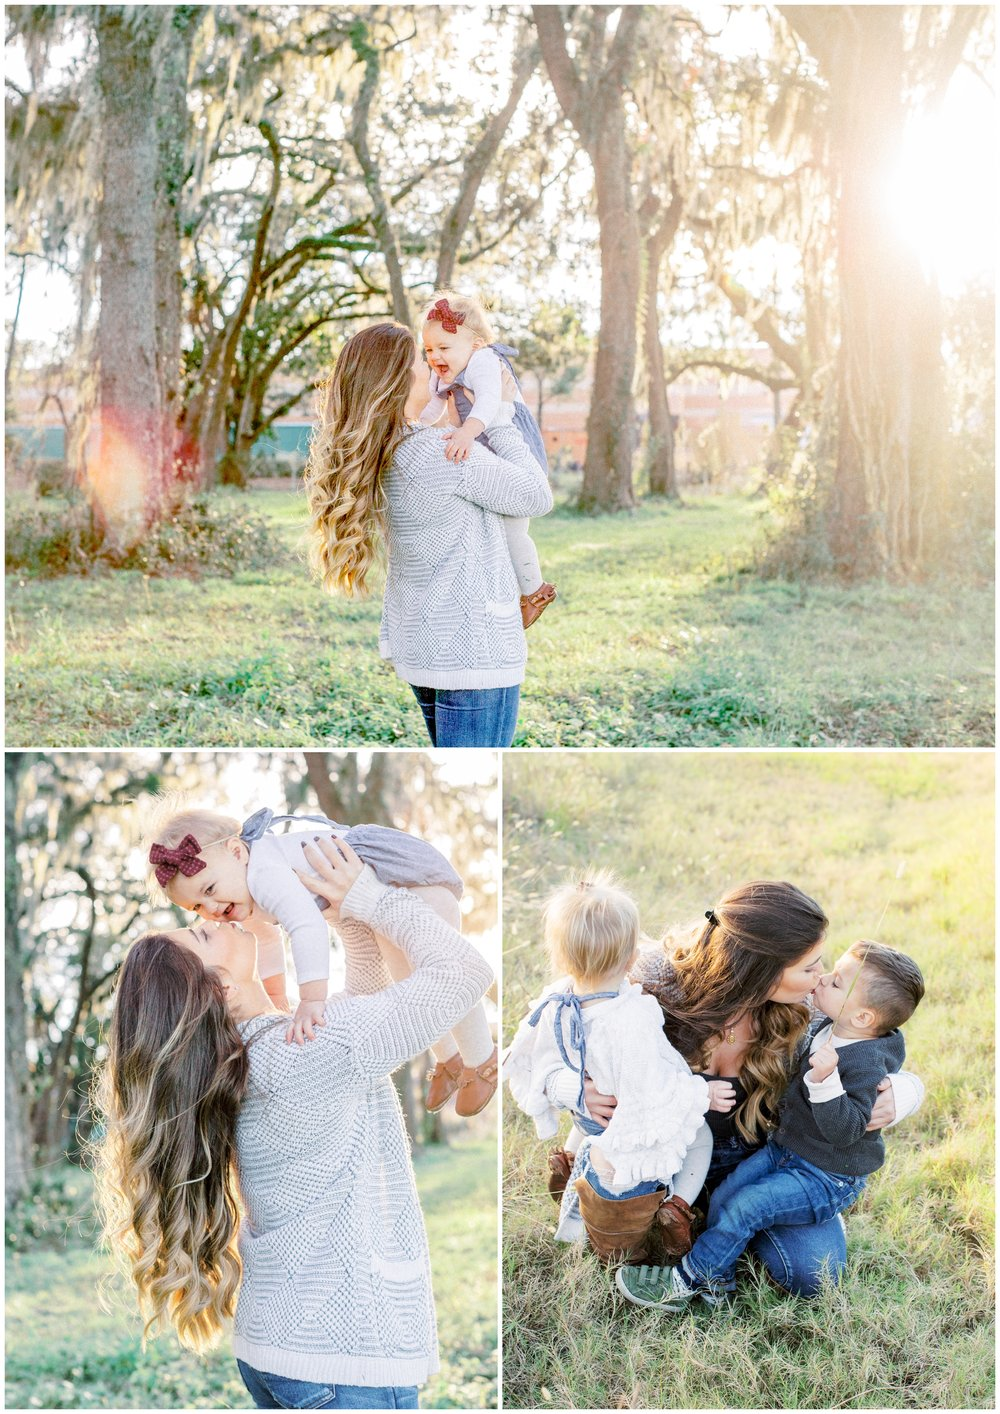 Lisa Silva Photography- Ponte Vedra Beach, St. Augustine and Jacksonville, Florida Fine Art Film Destination Wedding Photography- Family Lifestyle Session in St. Augustine_0022.jpg